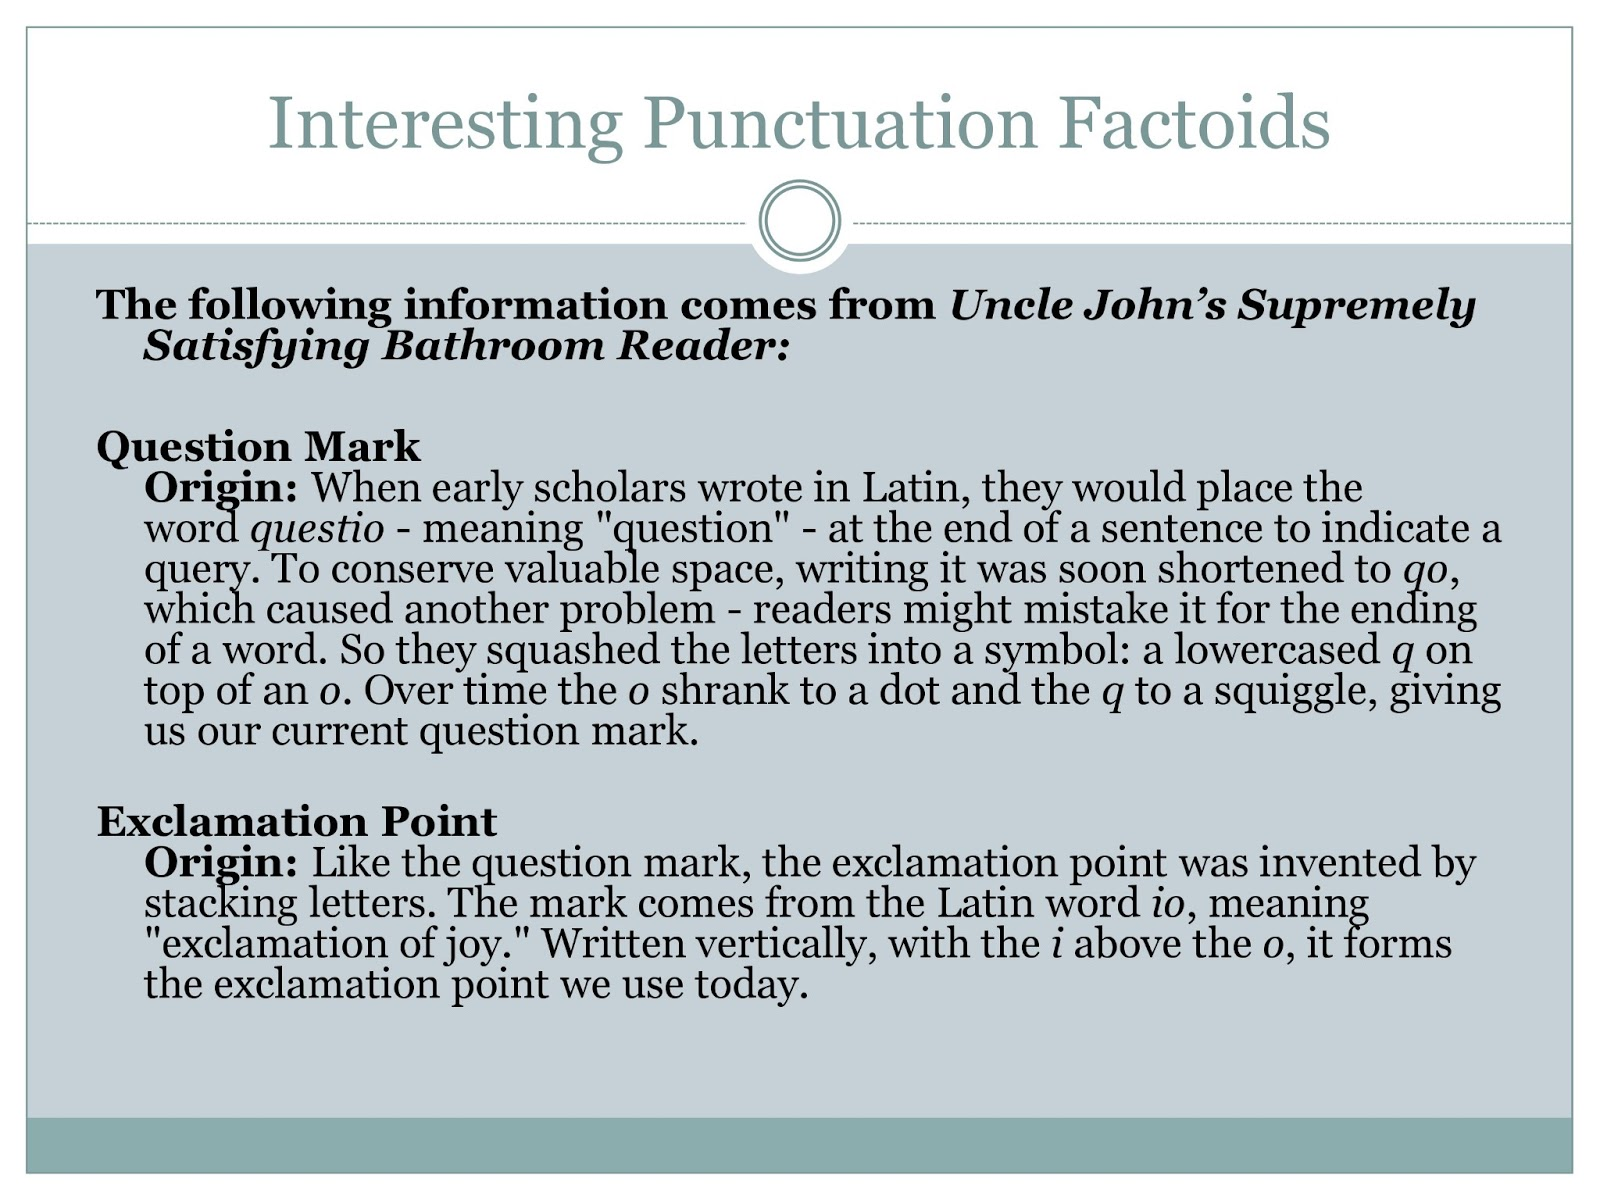 Punctuation In Resumes Writing Center Workshops Punctuation